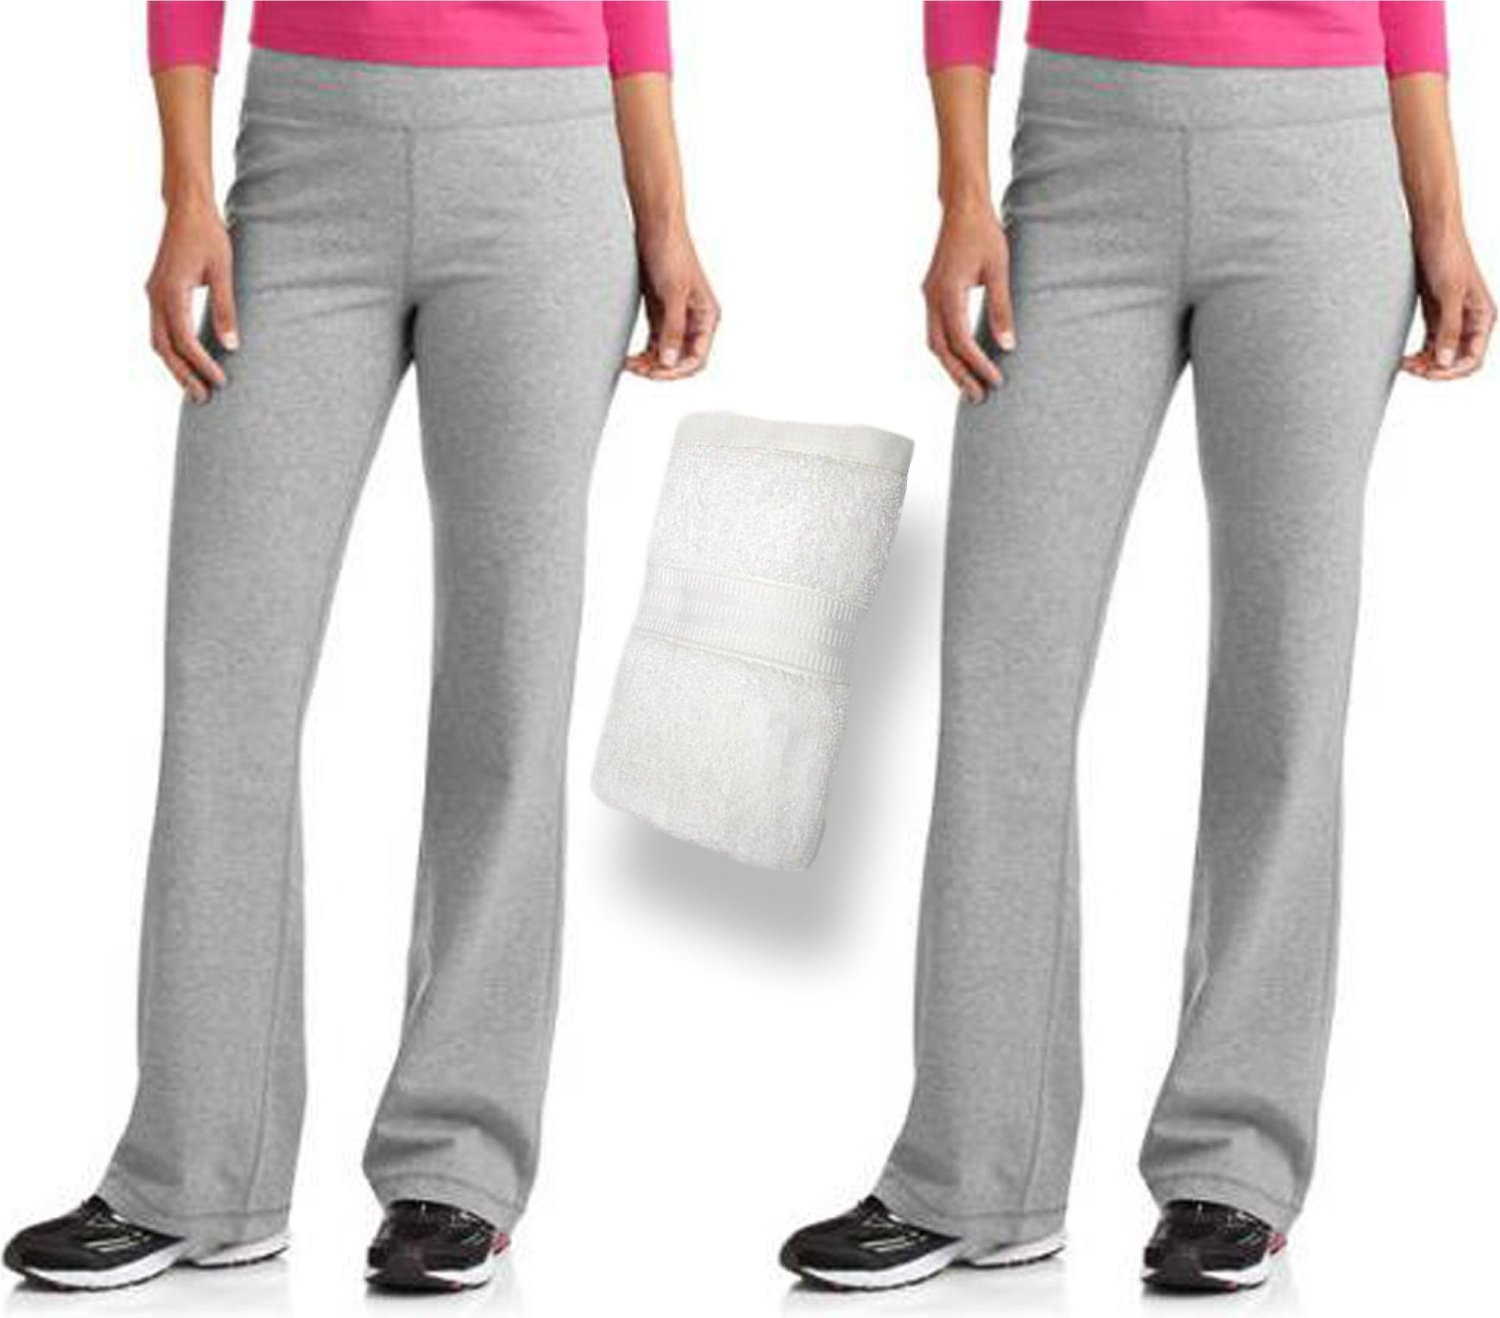 4b4ef7d644 Get Quotations · Danskin Now Women's Dri More Bootcut Pants 2 Pack and  Exclusive Sports Towel